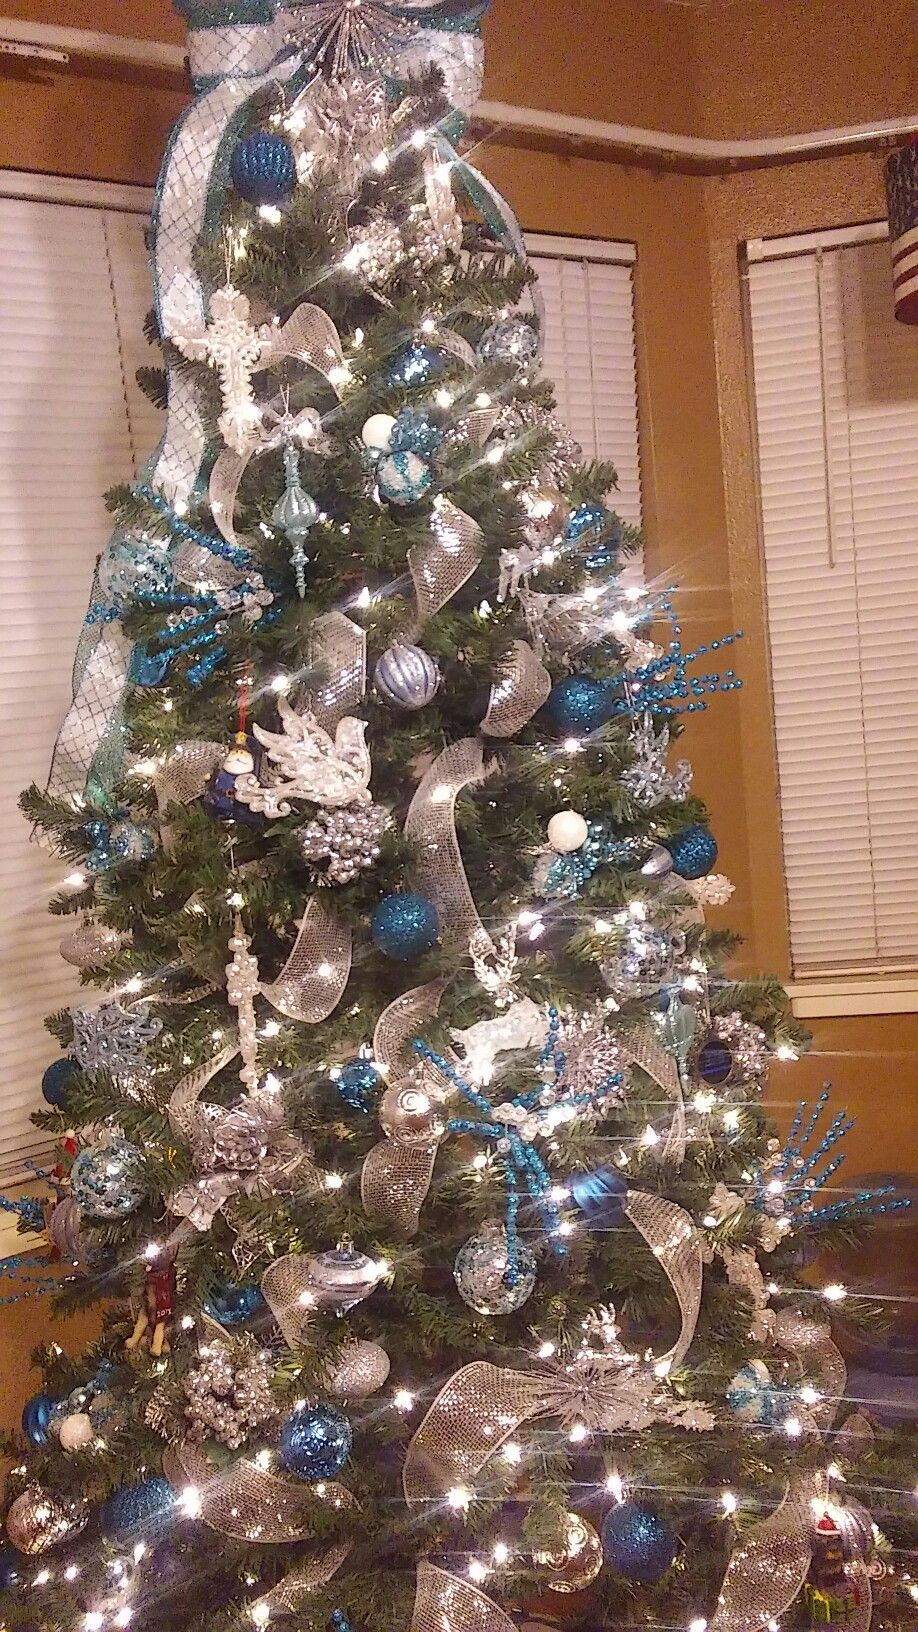 Turquoise Christmas Lights.Christmas Tree In Light Blue Turquoise White And Silver